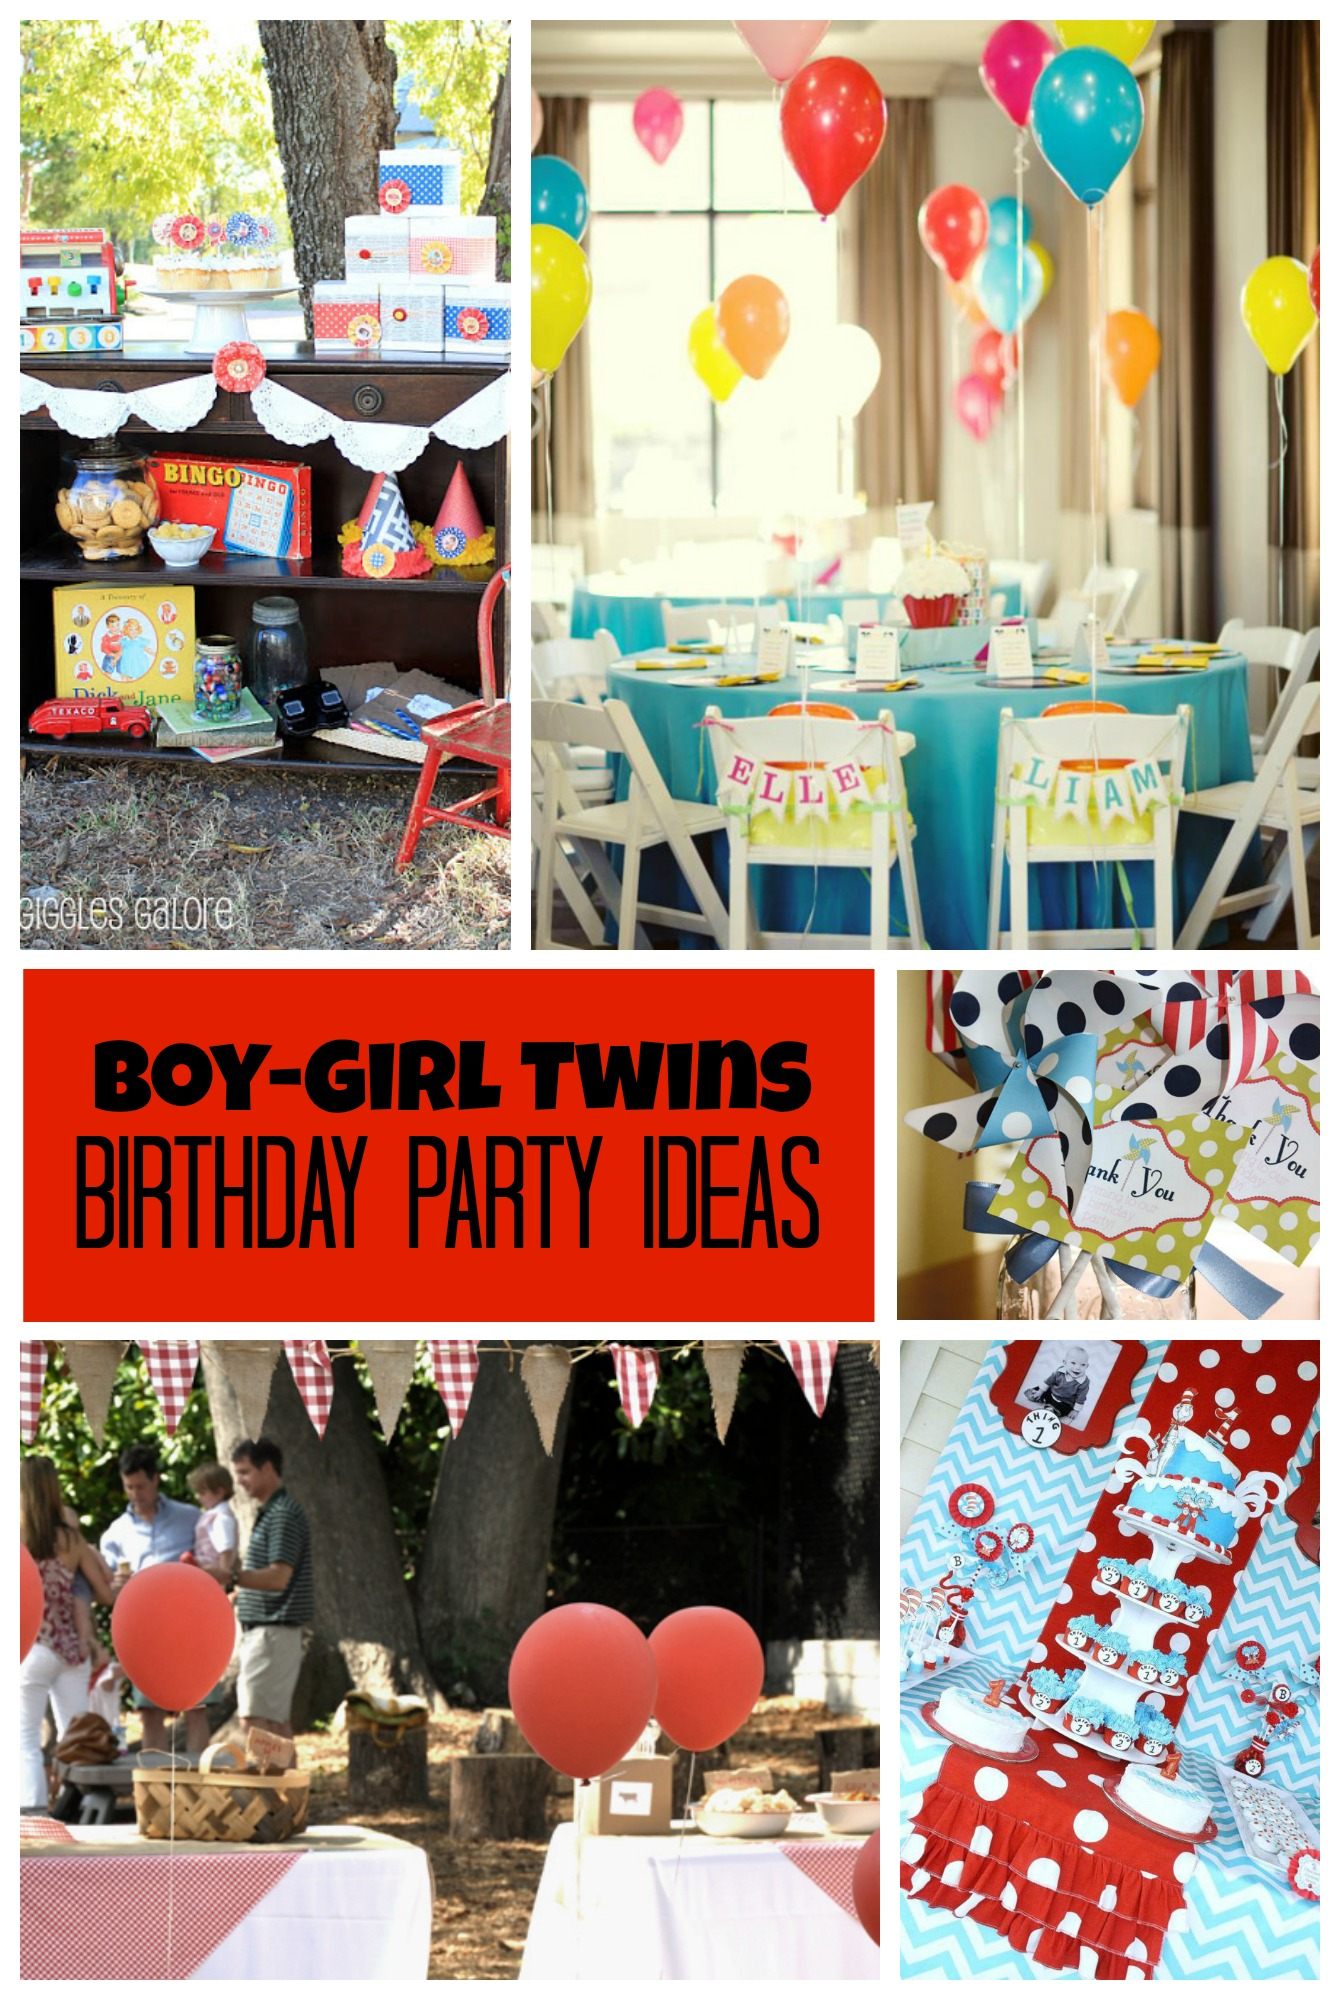 birthday activities for girls ; 820cfc02173b0337dbc12e5126efb492